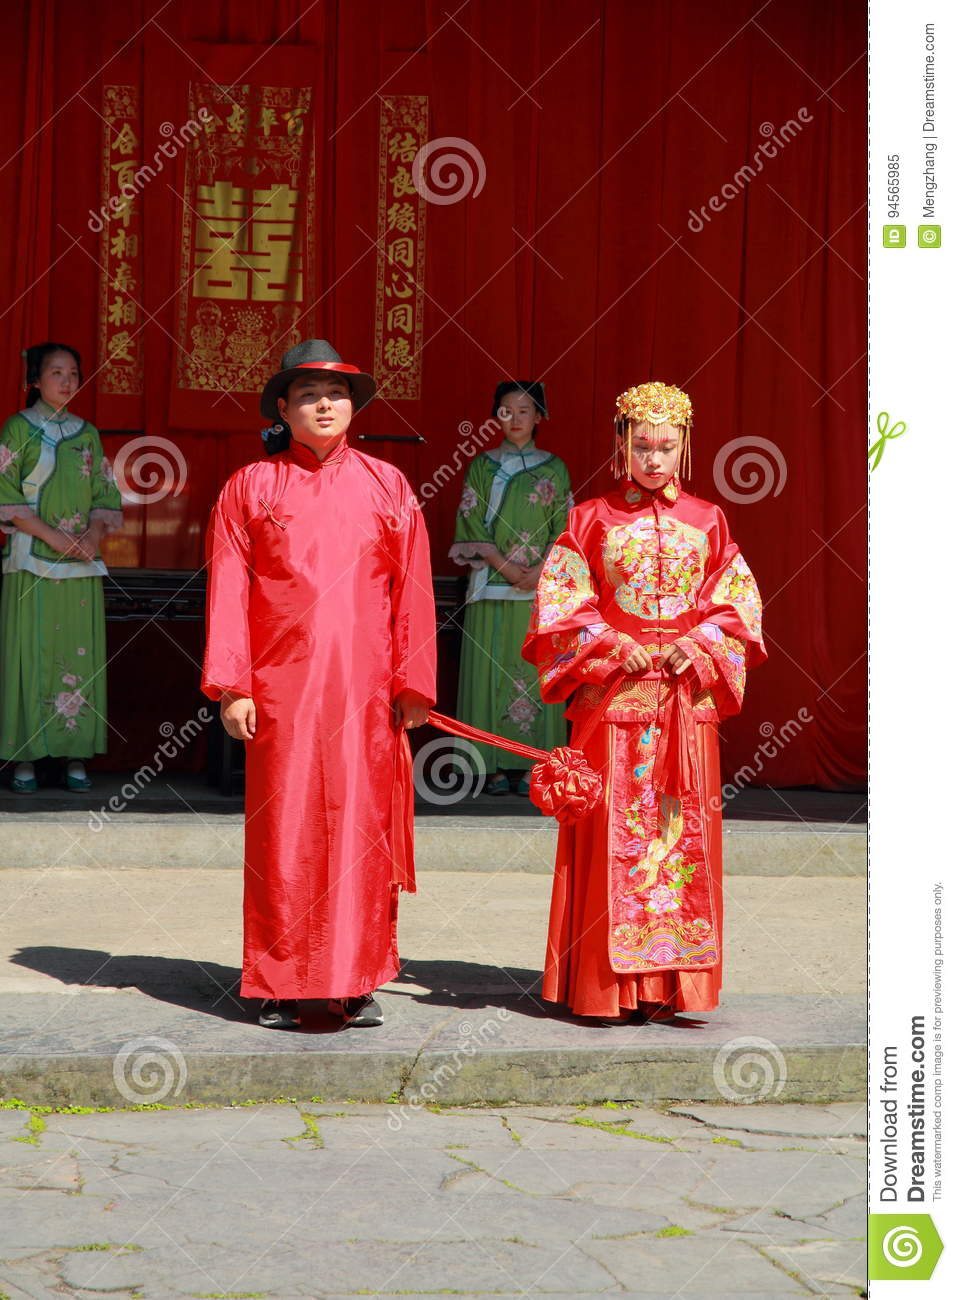 The ancient Chinese traditional wedding, bow to Heaven and Earth as part of a wedding ceremony